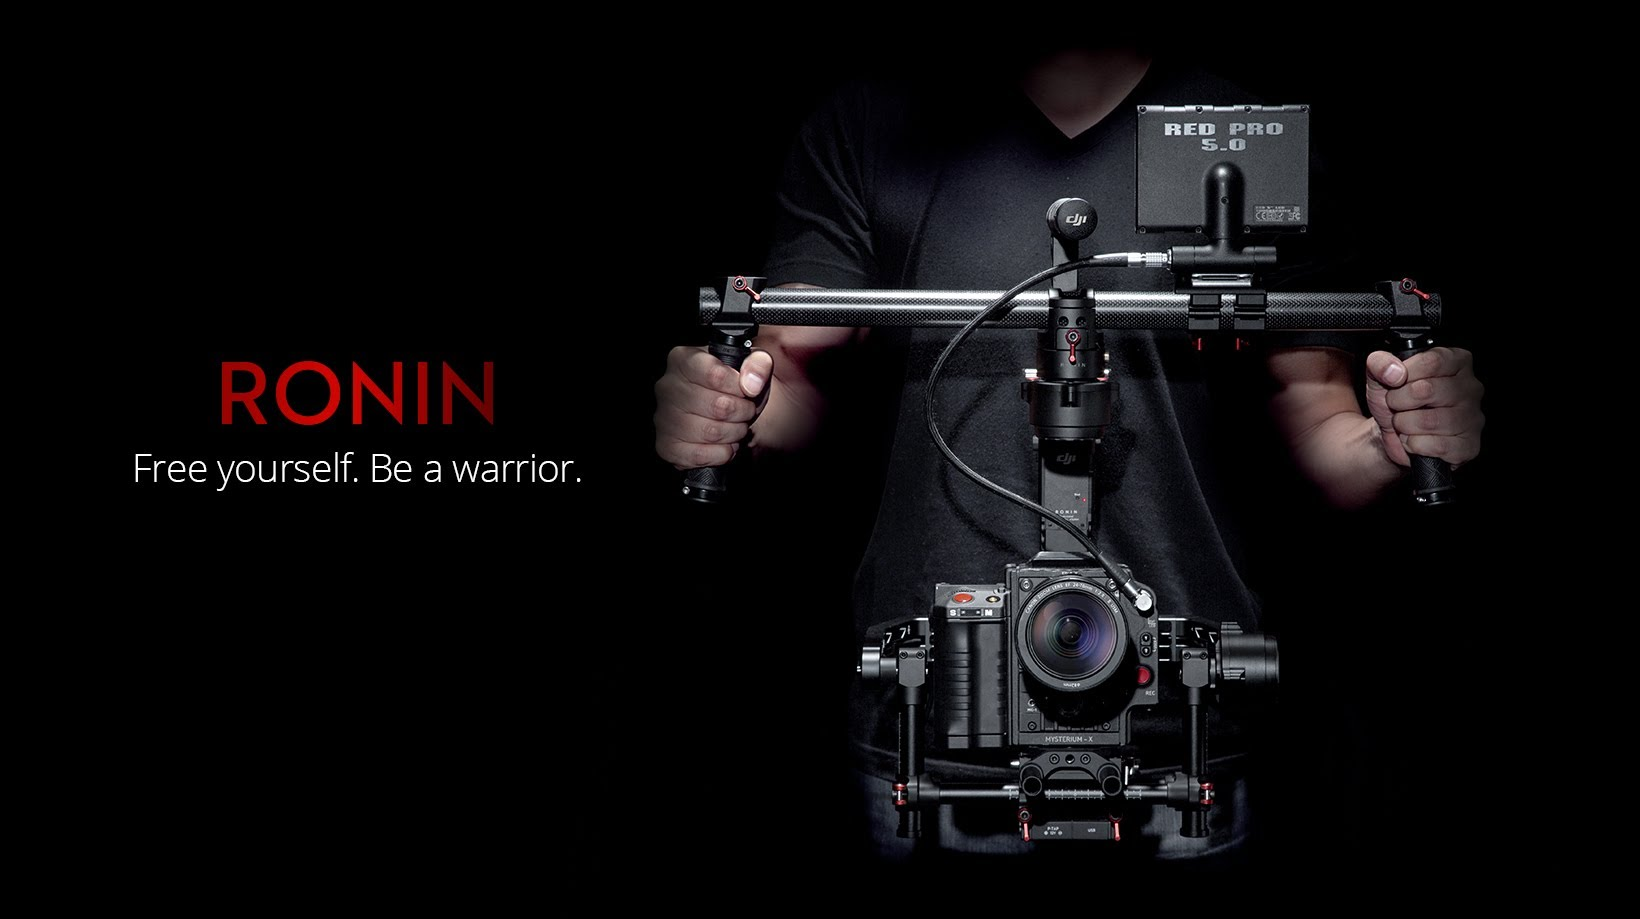 The New DJI Ronin 3-Axis Gimbal Stabilizer